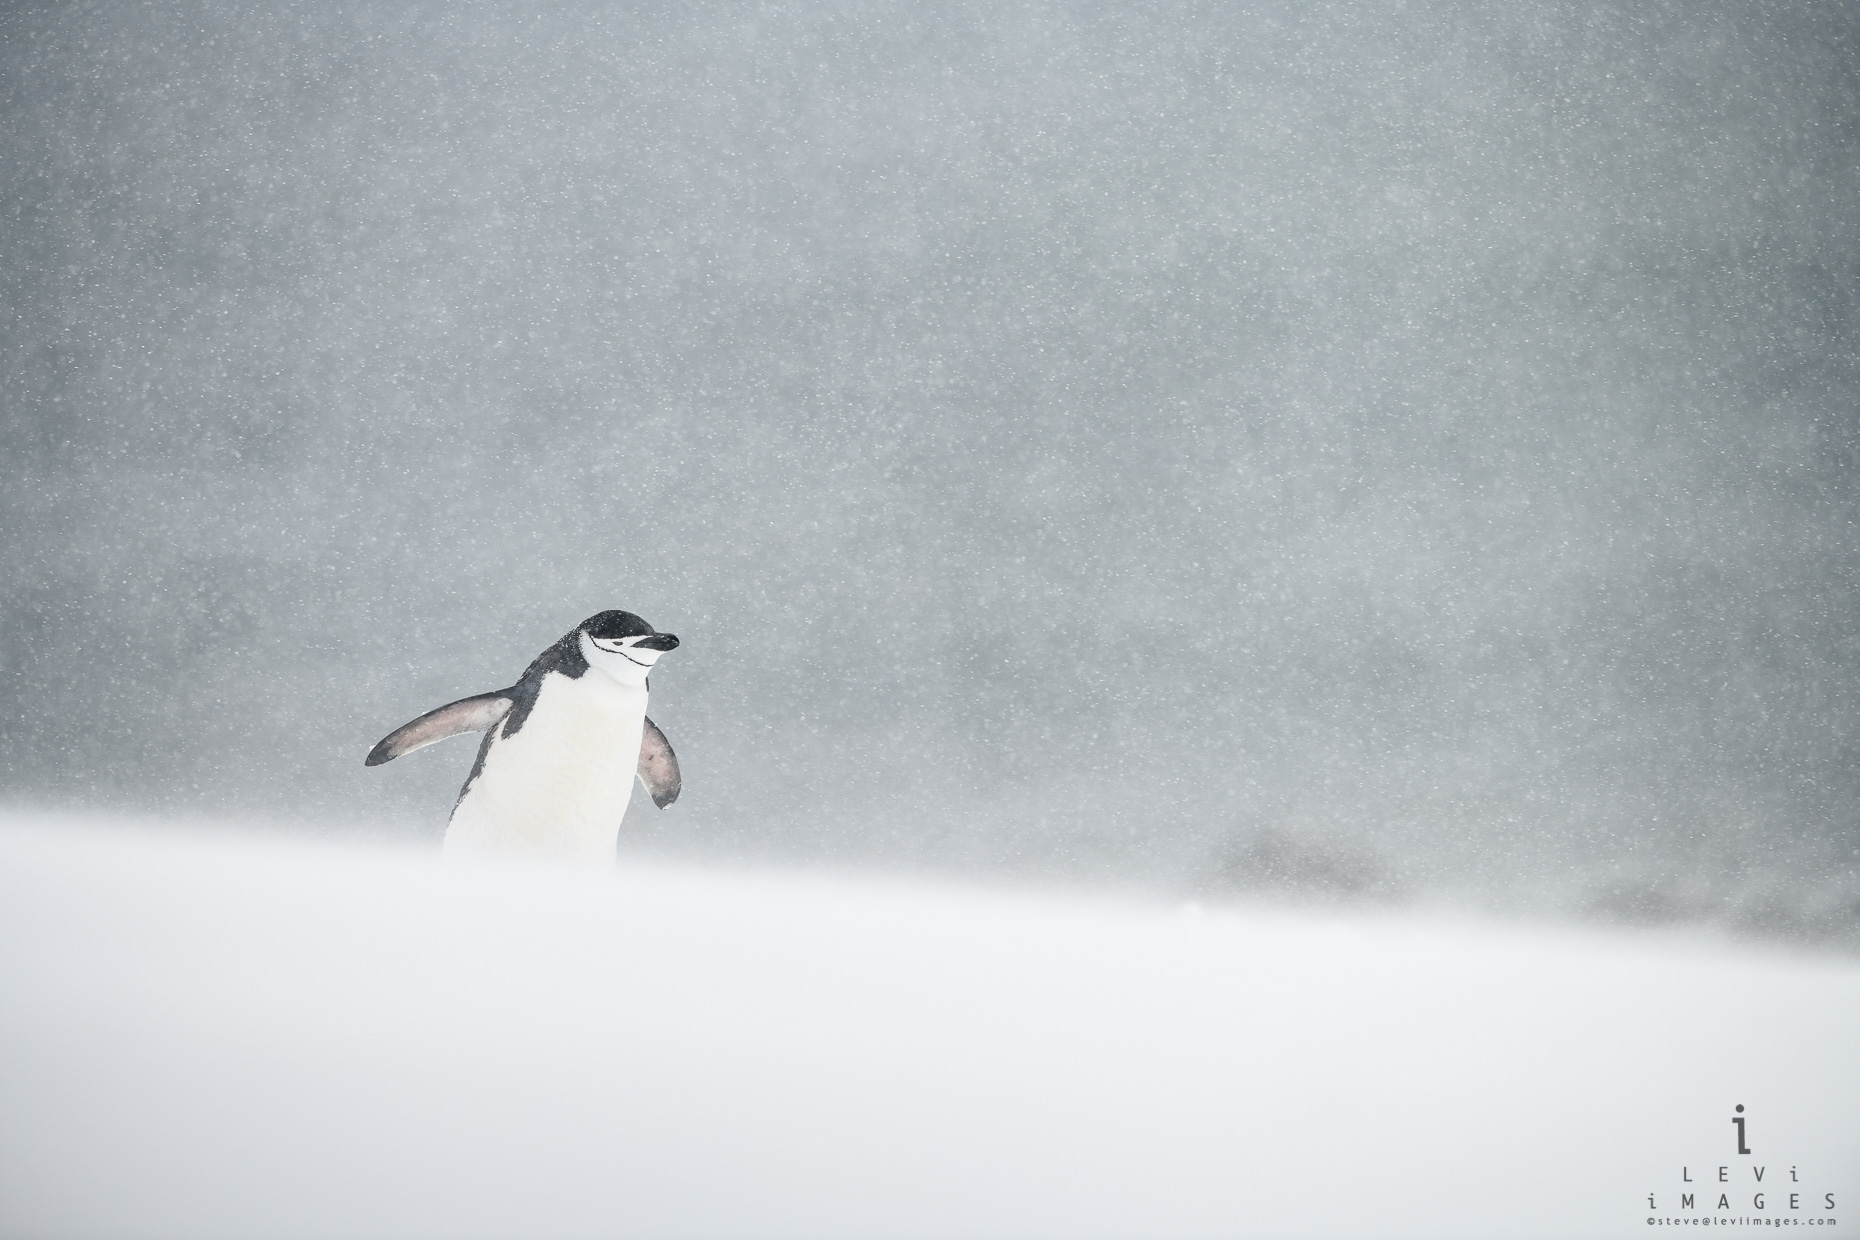 Chinstrap penguin (Pygoscelis antarcticus) in snowstorm.  Angry sea, Penguin Island, Antarctica